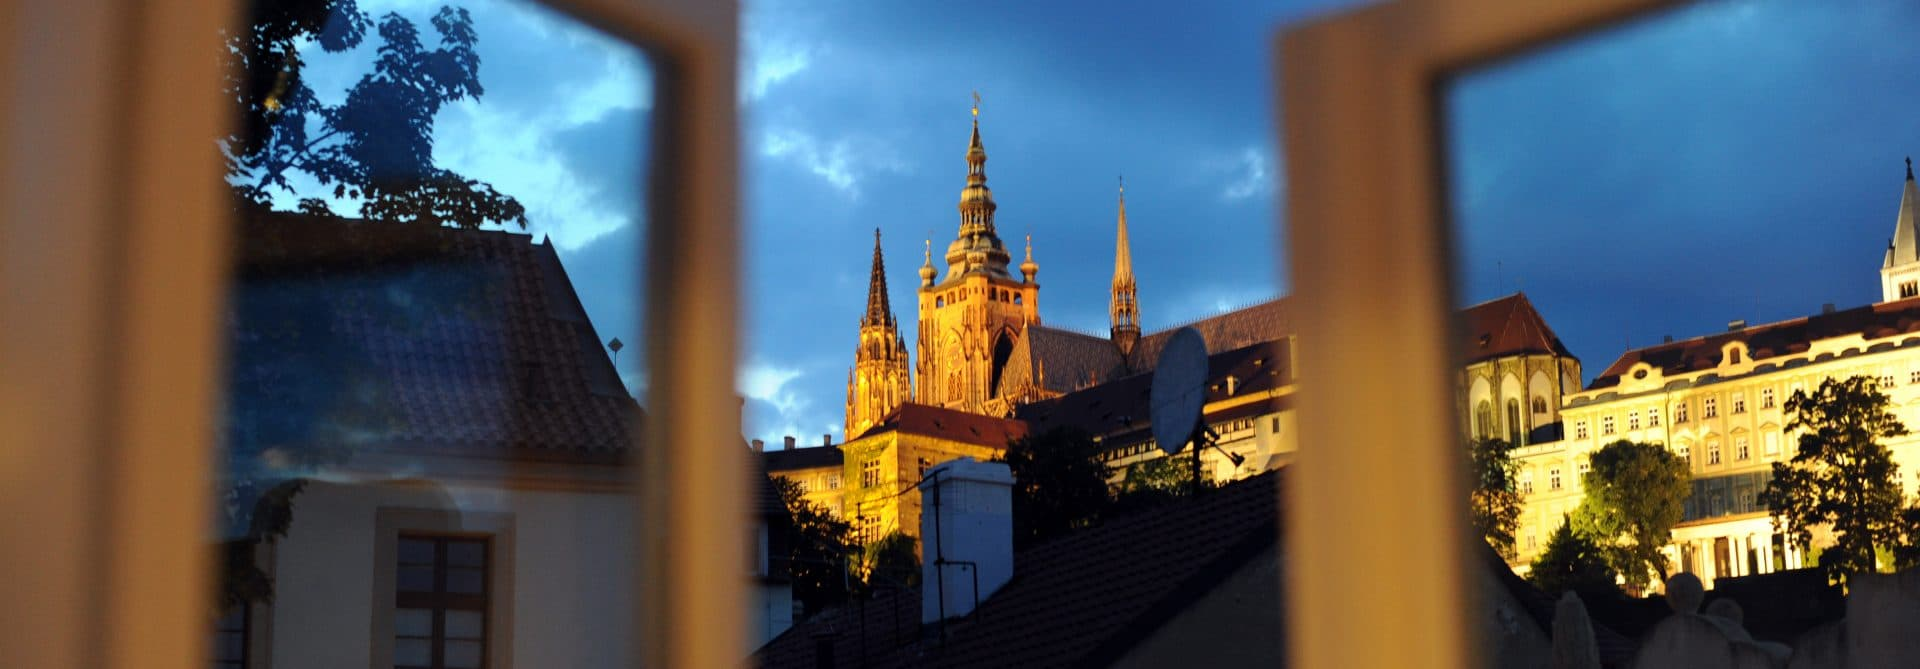 Room with a view - Prague, Czech Republic